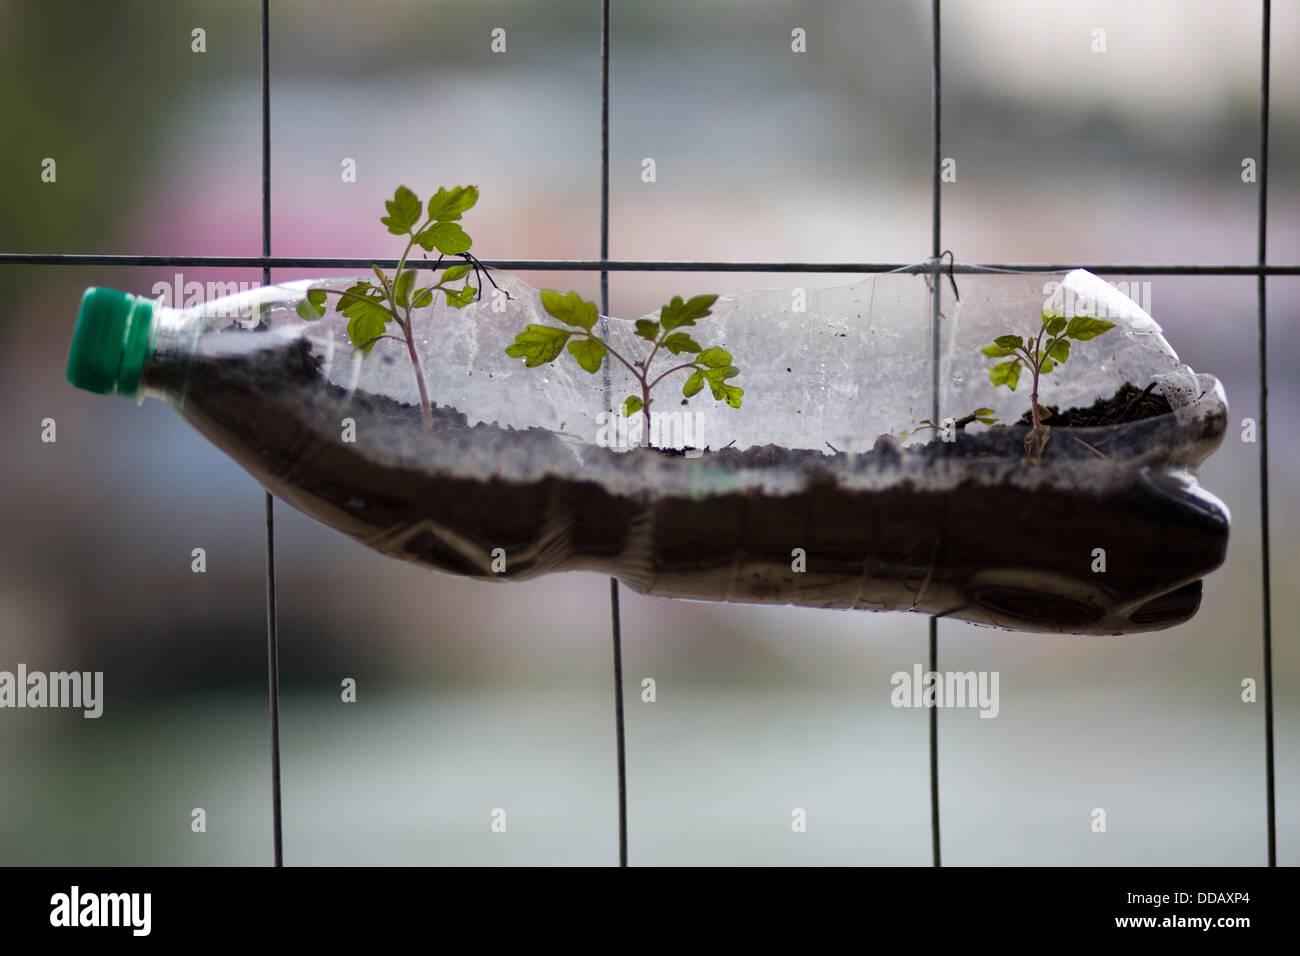 Plastic Bottle with Seedlings growing in it attached to a fence, Inventive way to recycle - Stock Image